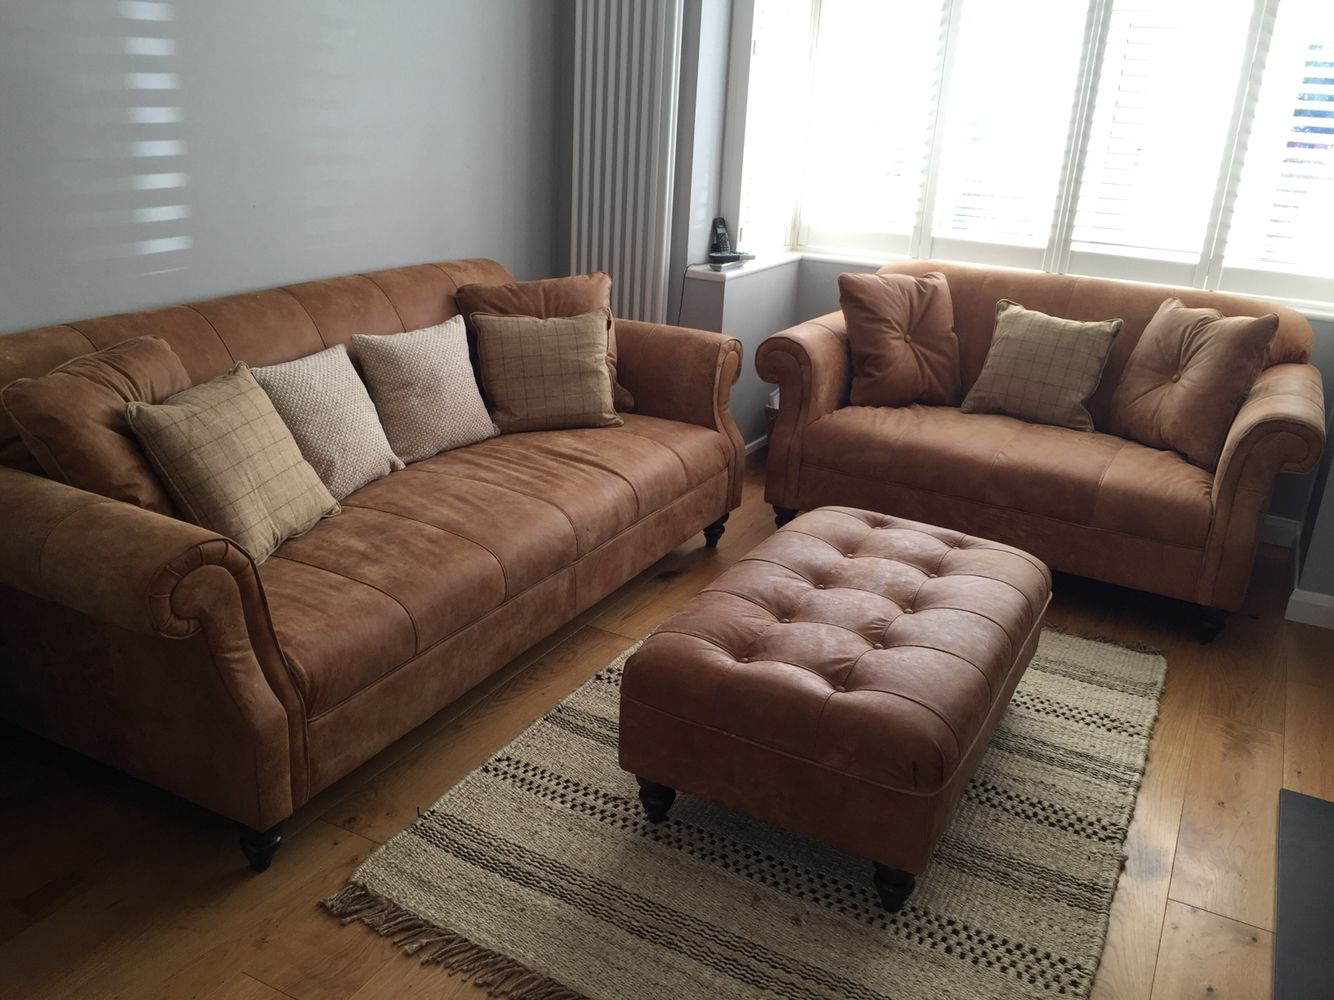 Tan Leather Sofa Grey Walls Natural Rug Living Room White Shutter Blinds Oak Floors